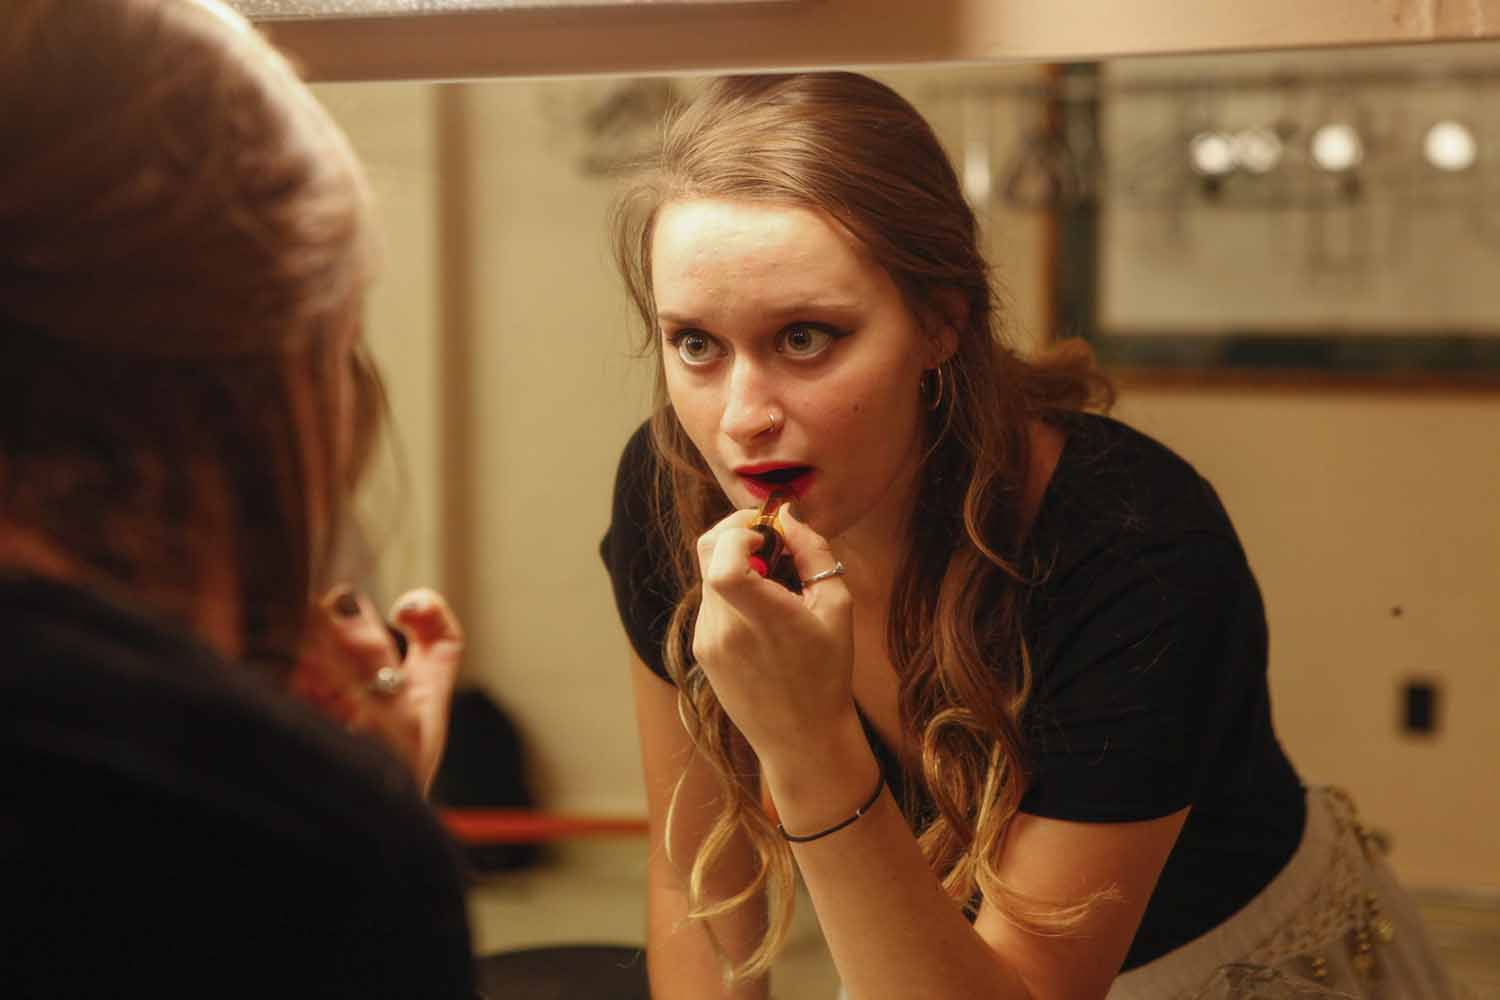 Paige Kiehl puts on lipstick in the mirror as she gets ready to perform with her group, Mizzou Masti, as part of India Nite at Jesse Hall.